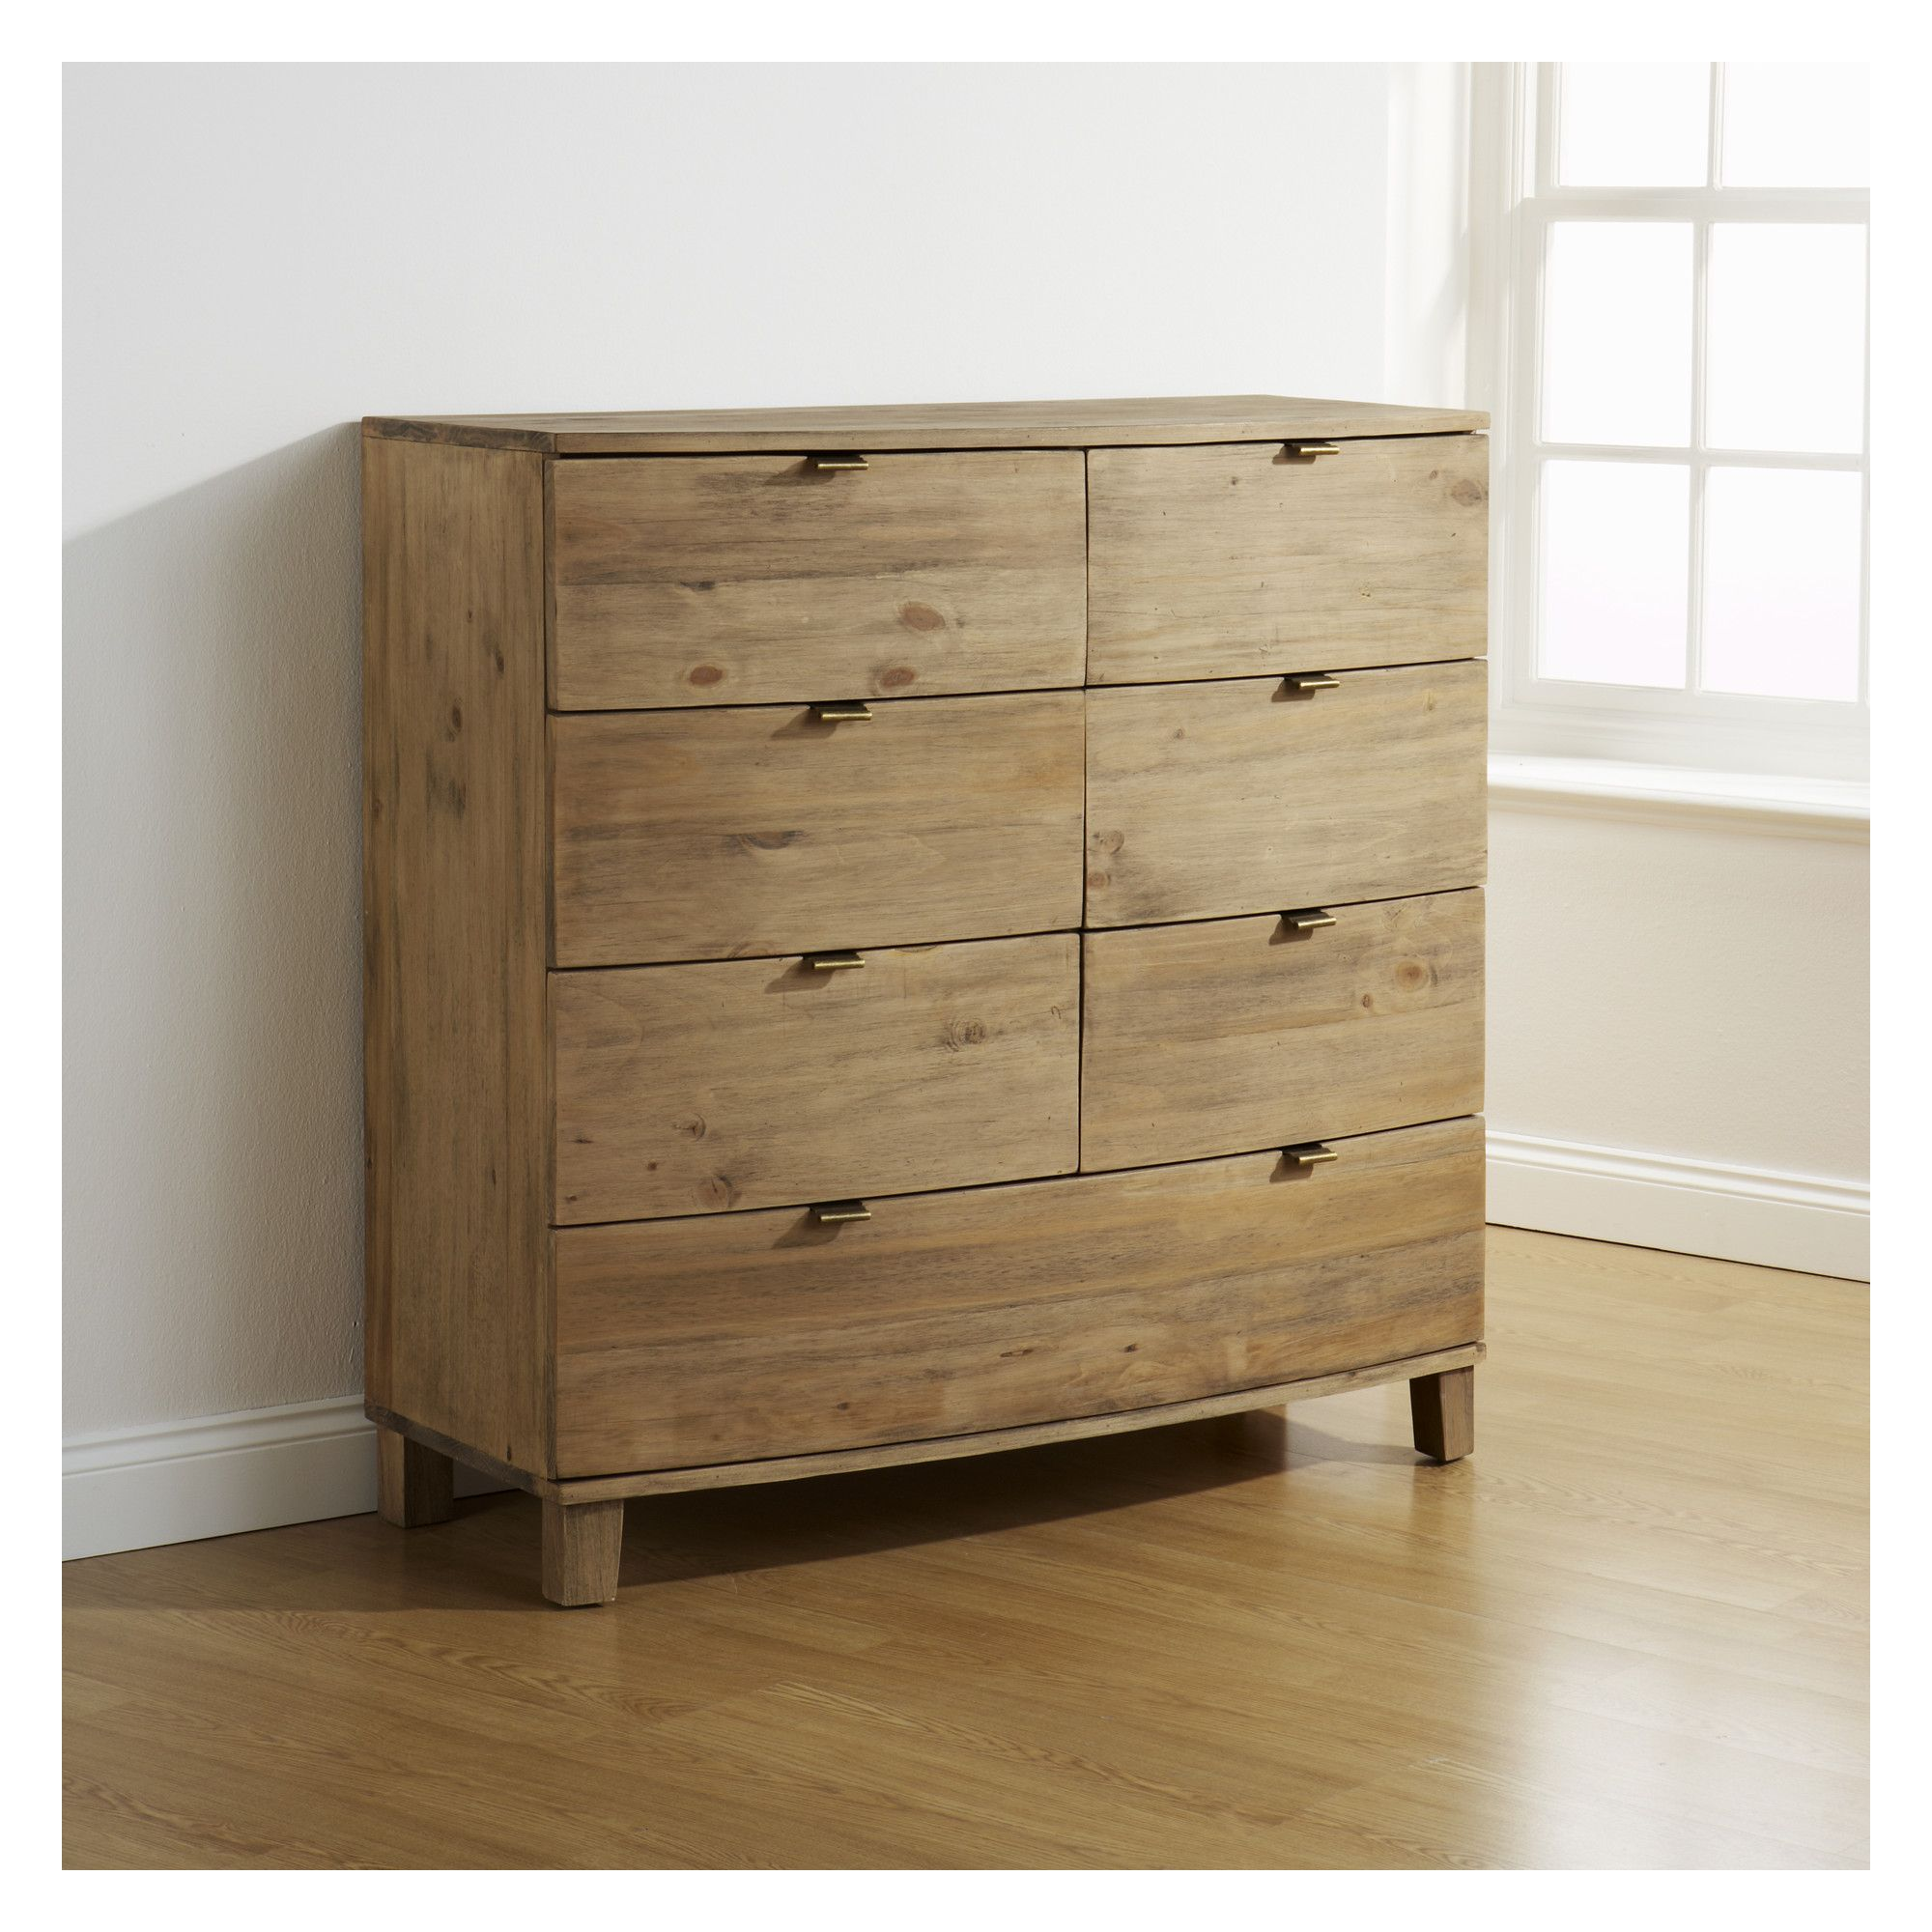 Elements Bow Curved 6 Over 1 Wide Chest at Tesco Direct